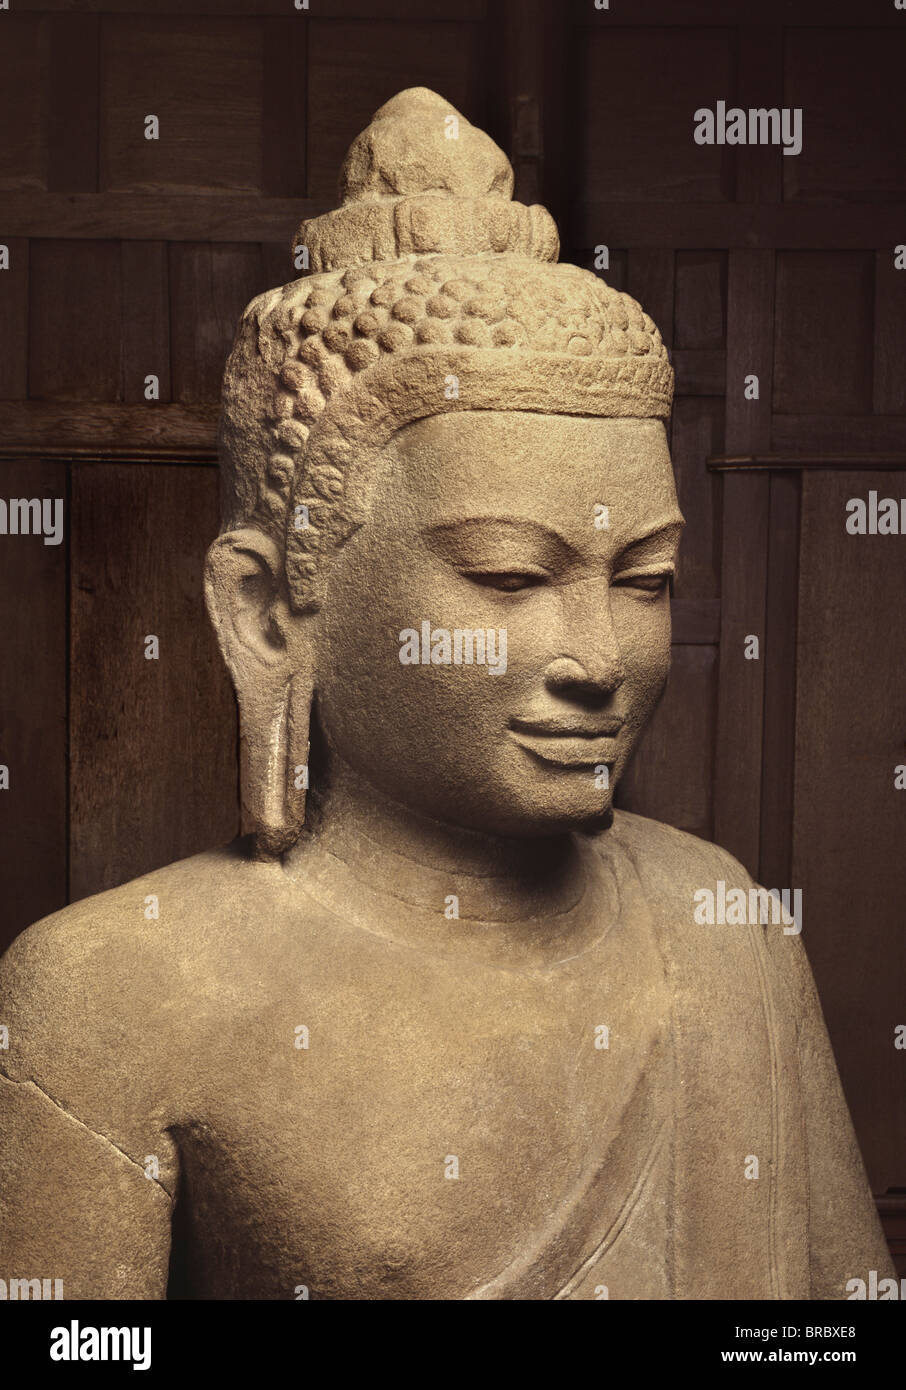 Head and torso of a sandstone Buddha, Lopburi style (Khmer influence) from the 14th century, Wat Mahathat, Lopburi, - Stock Image